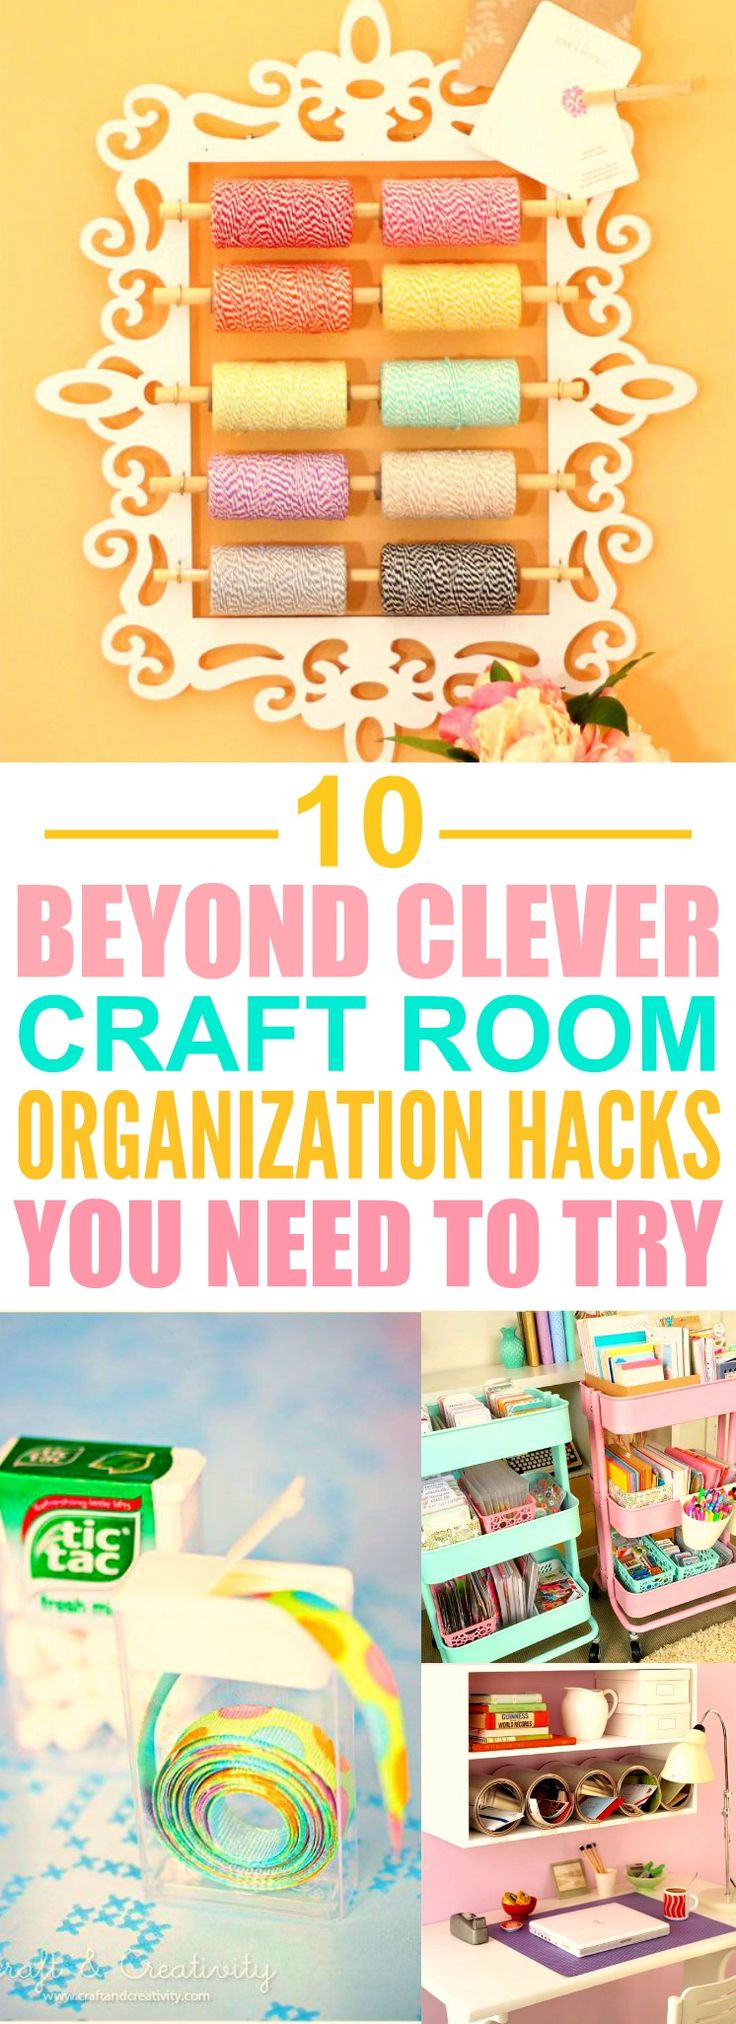 These 10 Clever Craft Room Organization Hacks are THE BEST! I'm so happy I found these AMAZING ideas! Now my craft room will look so good I'm definitely pinning for later!